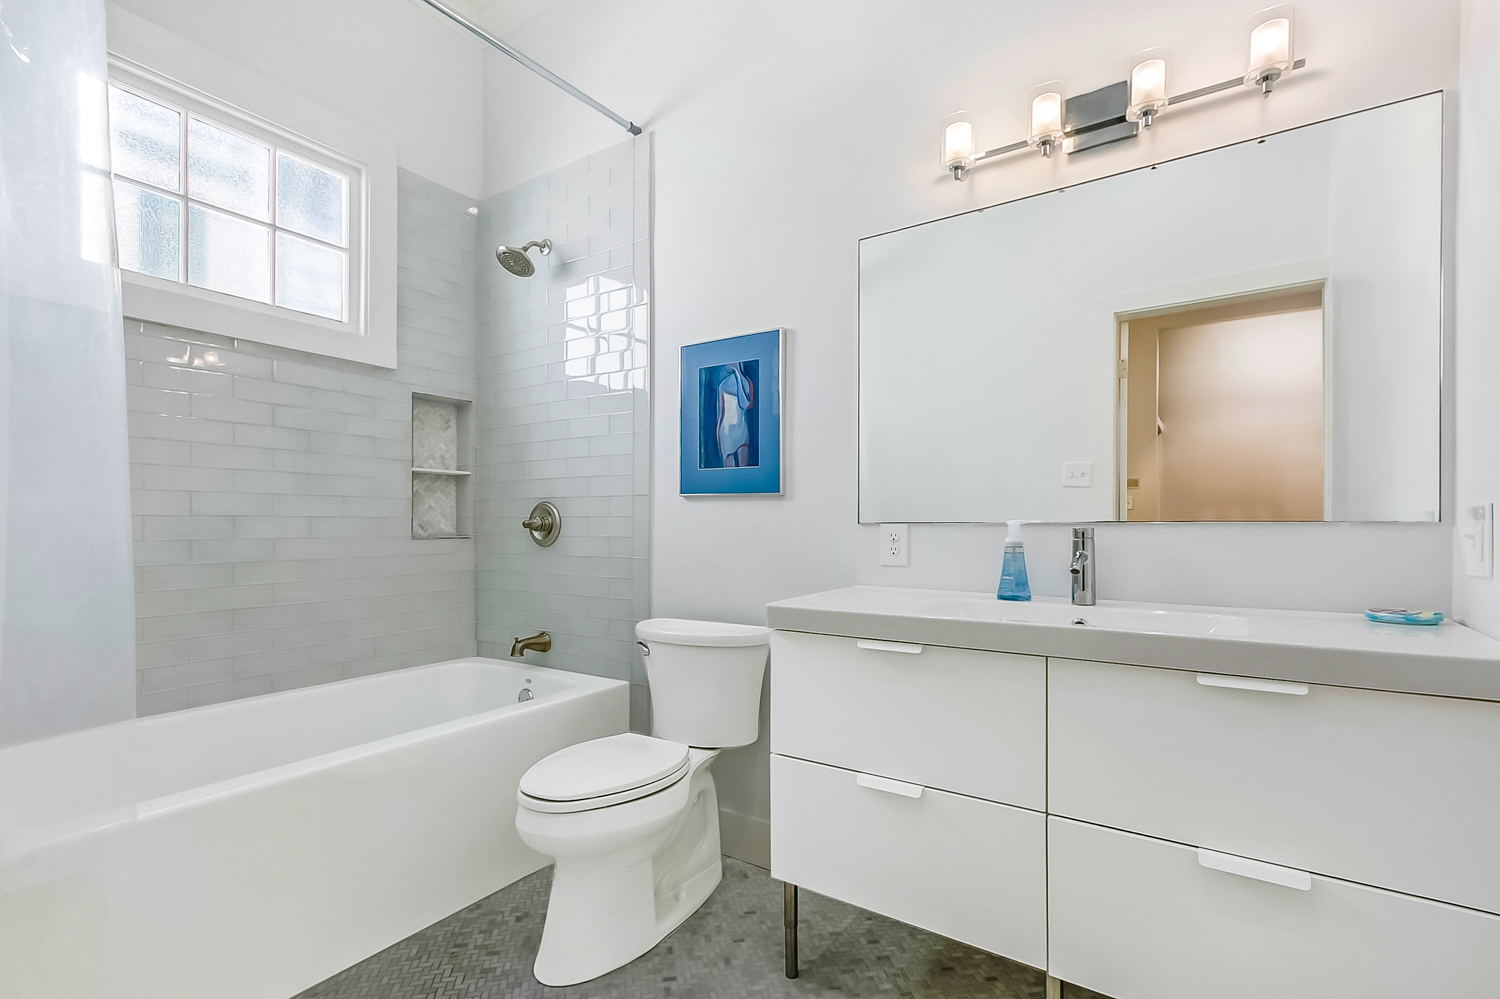 Garden District, House, 2 beds, 2.0 baths, $5000 per month New Orleans Rental - devie image_15